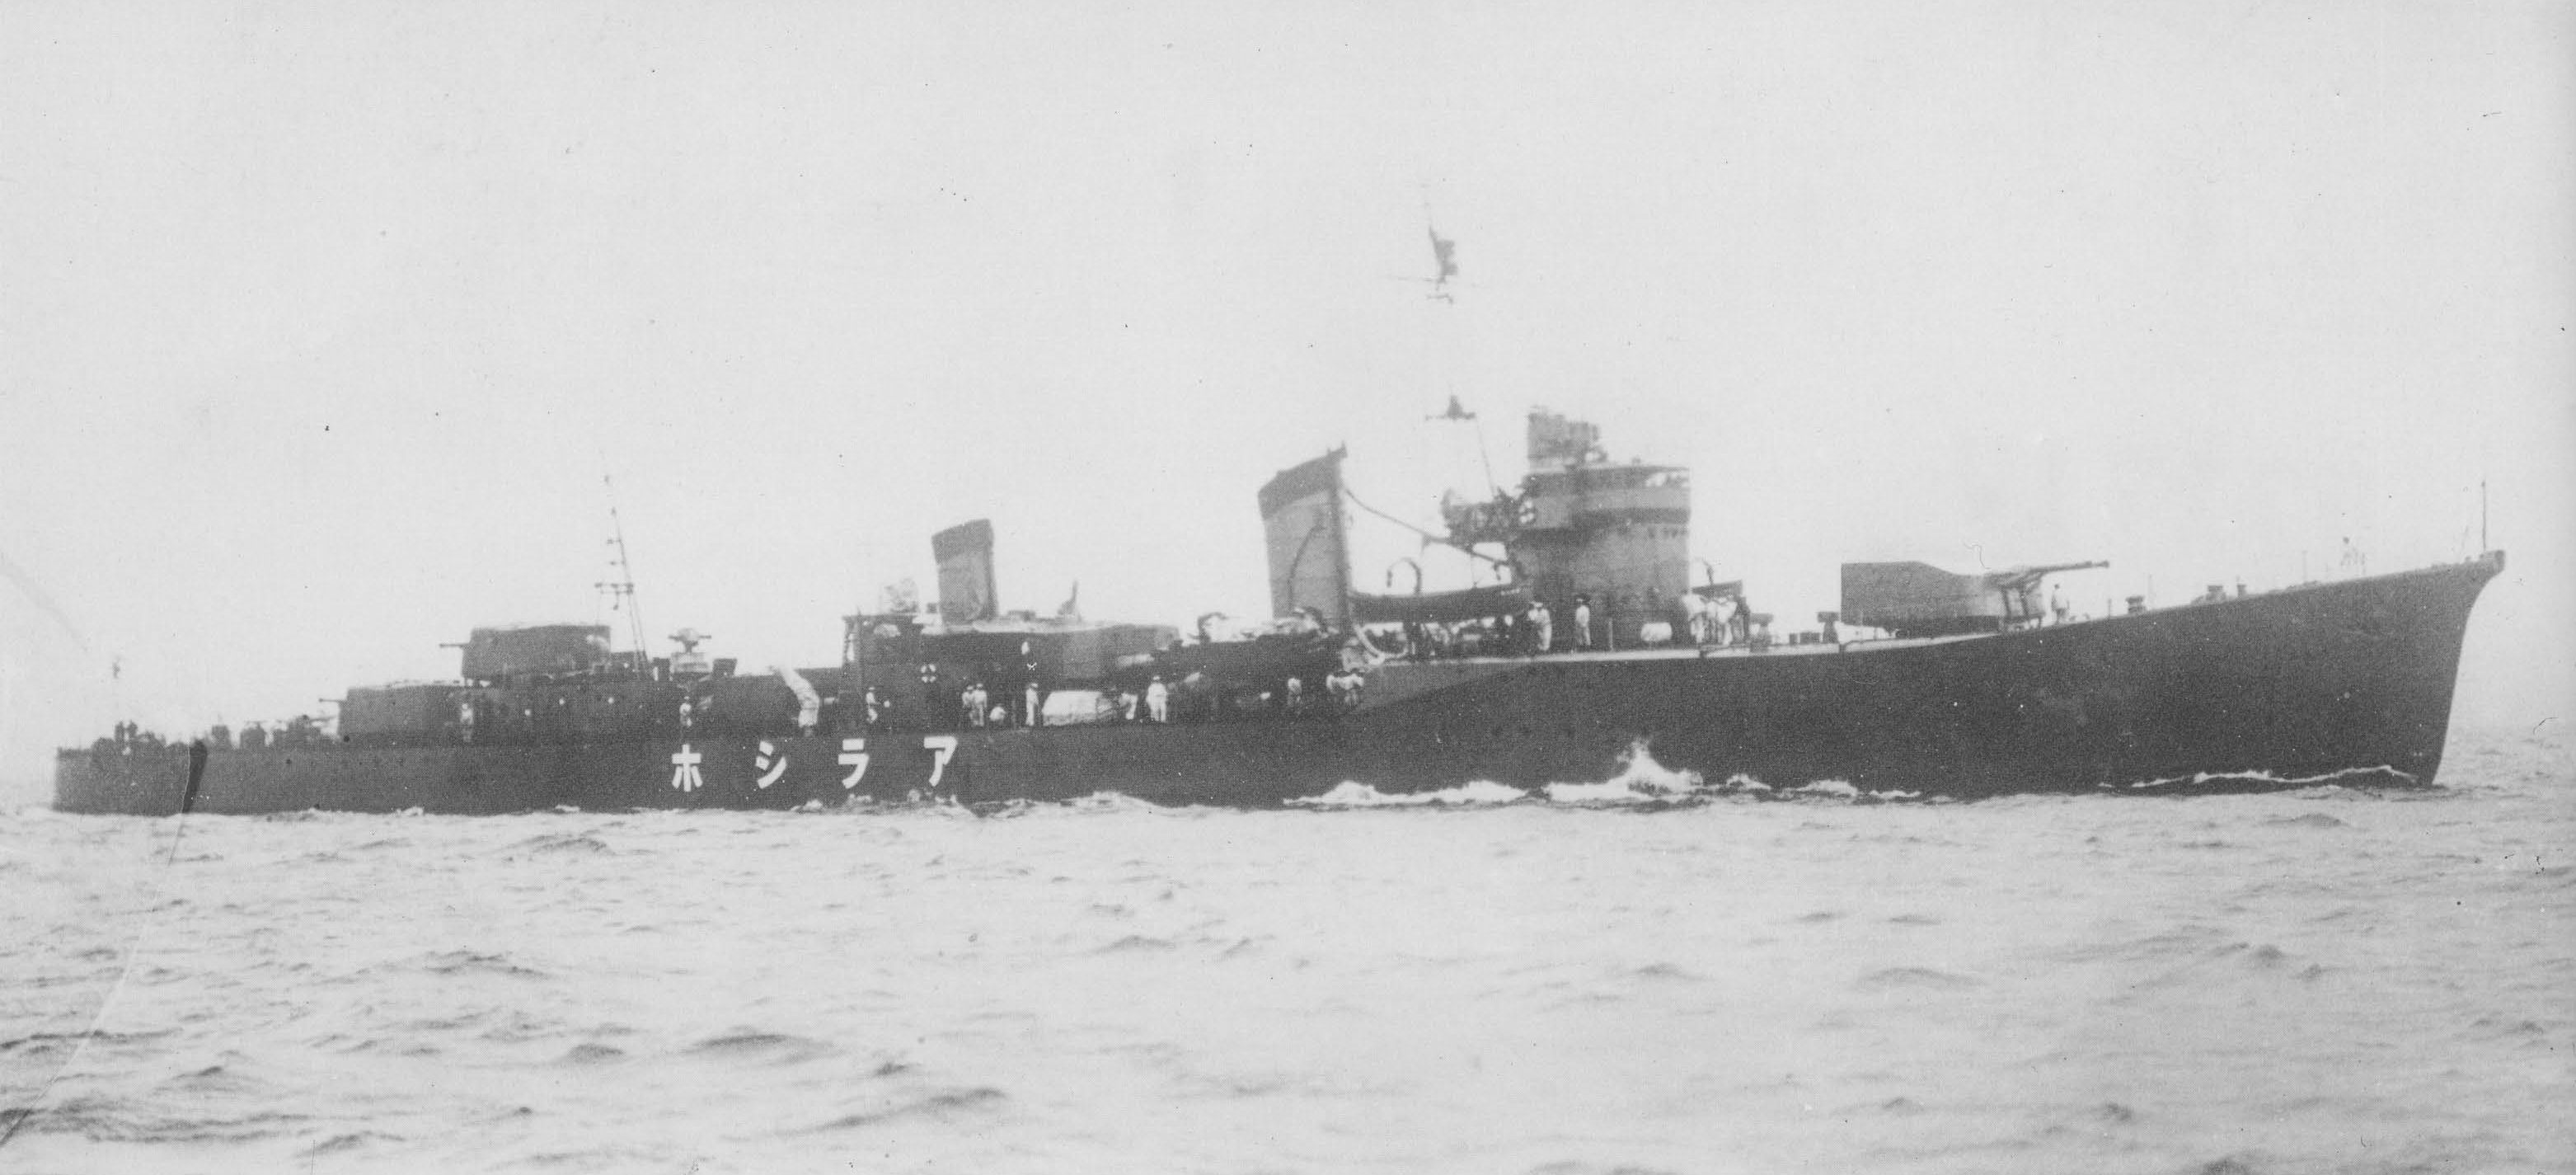 Ww ll destroyer escorts sunk japanese